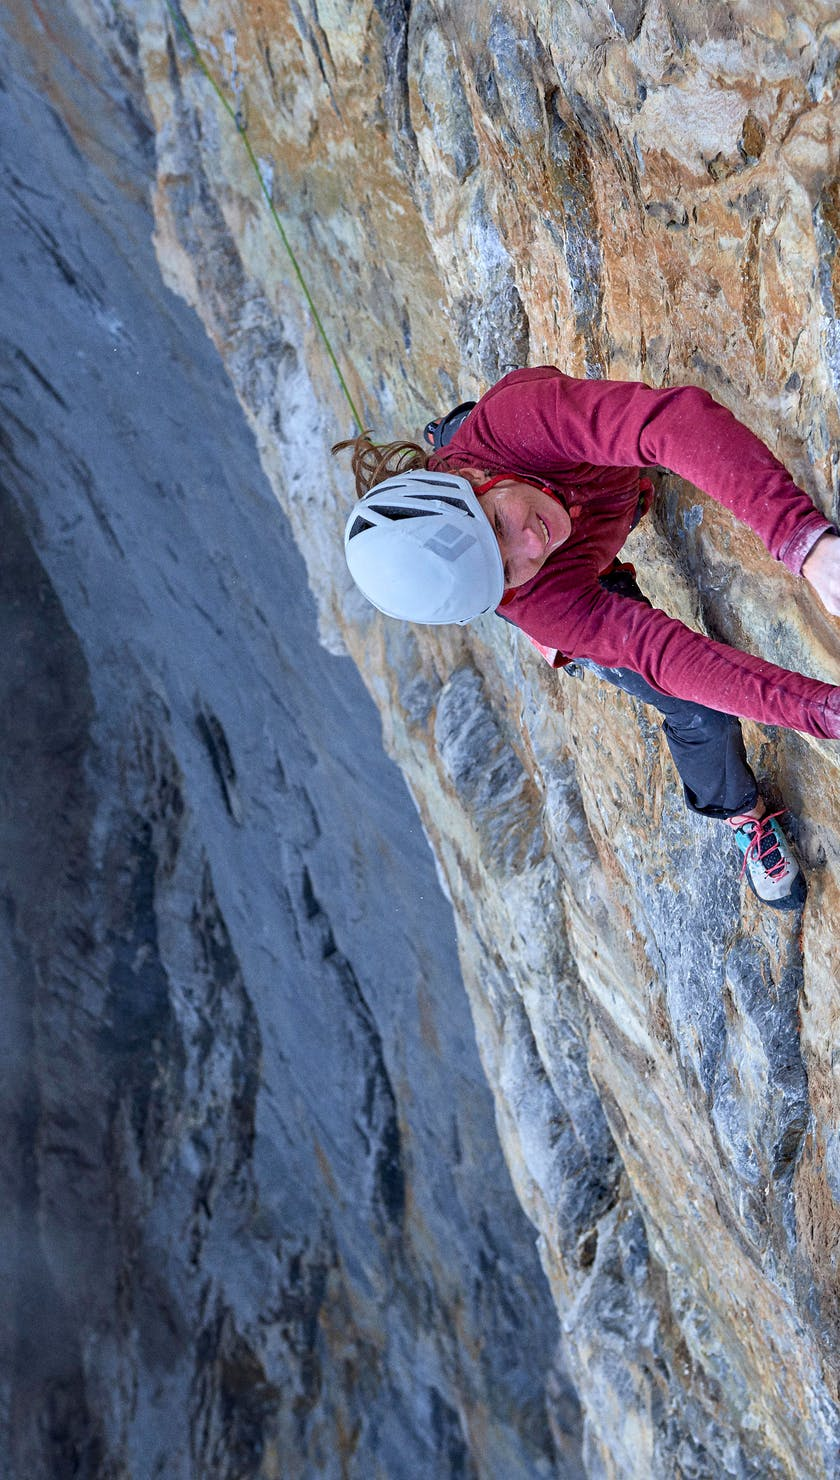 Babsi Zangerl climbs Odyssee 8a+ (5.13c) on the North Face of the Eiger